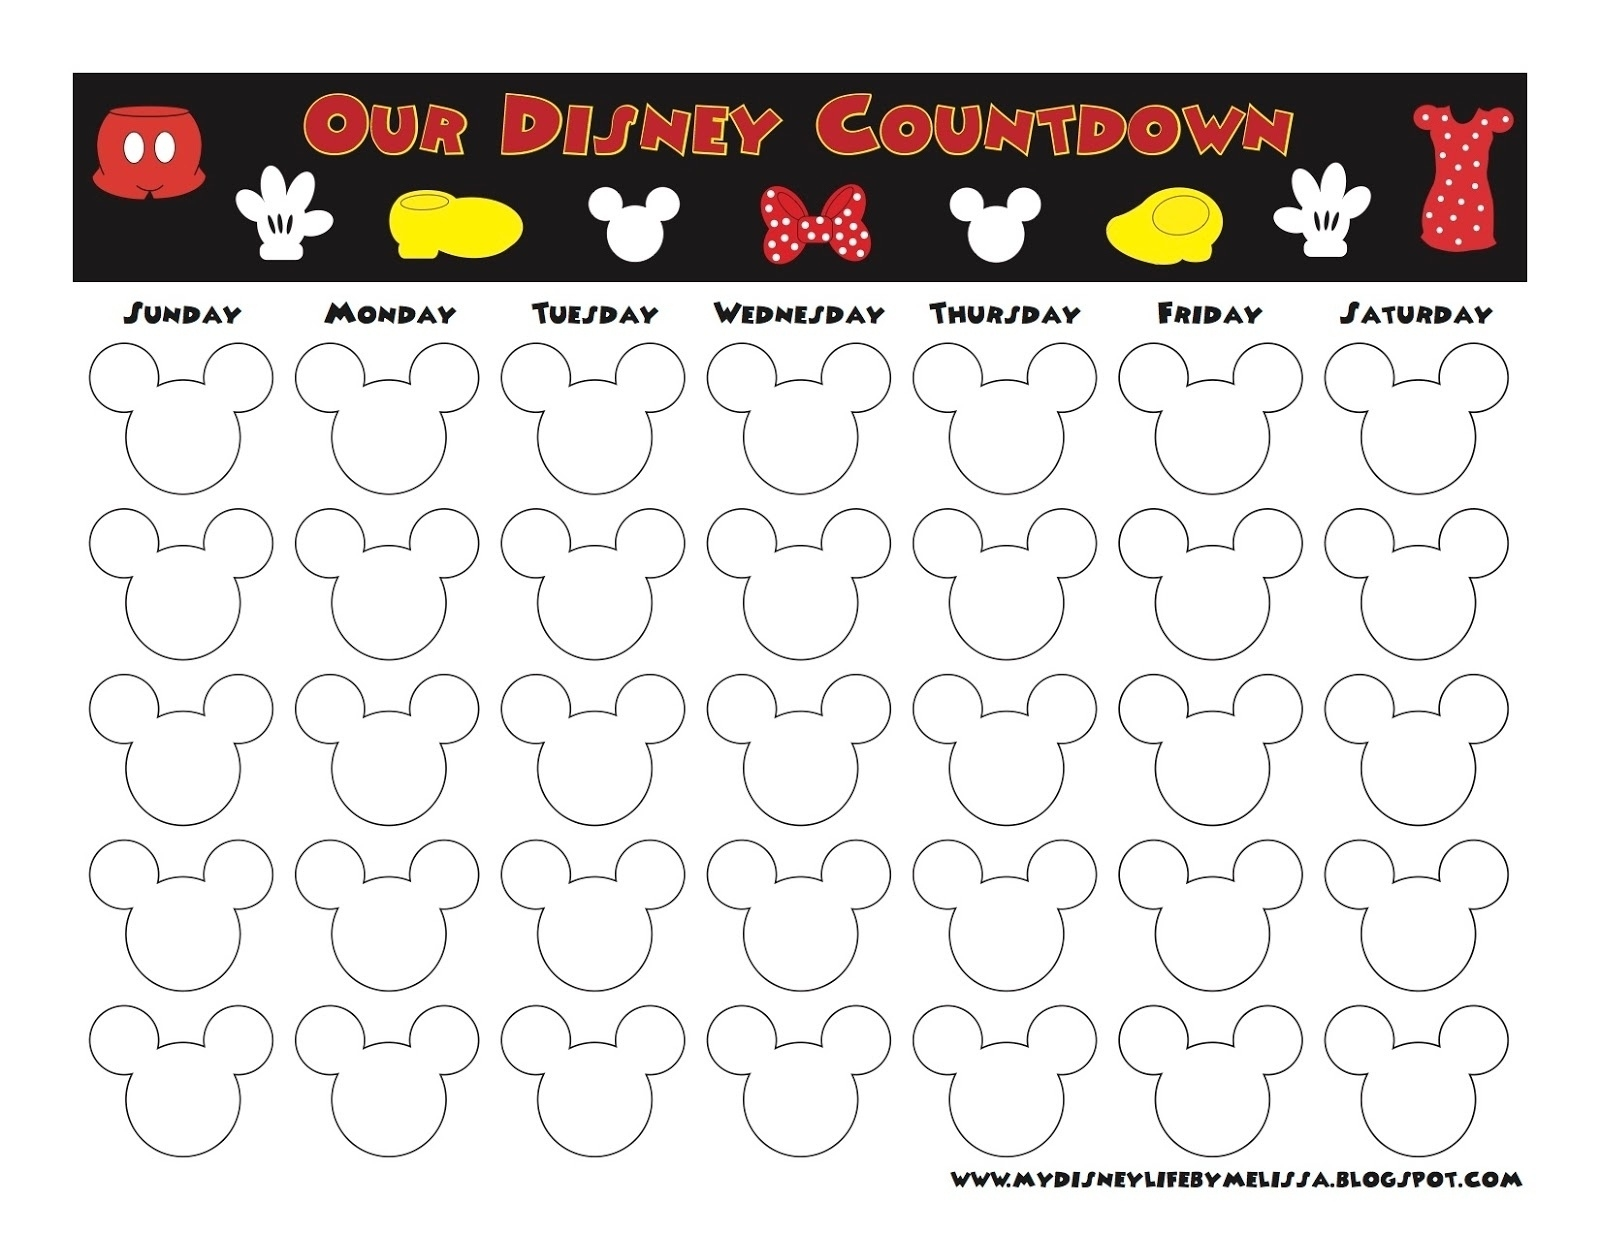 Calendar Countdown Free Download • Printable Blank Calendar Template_Calendar Countdown Free Download